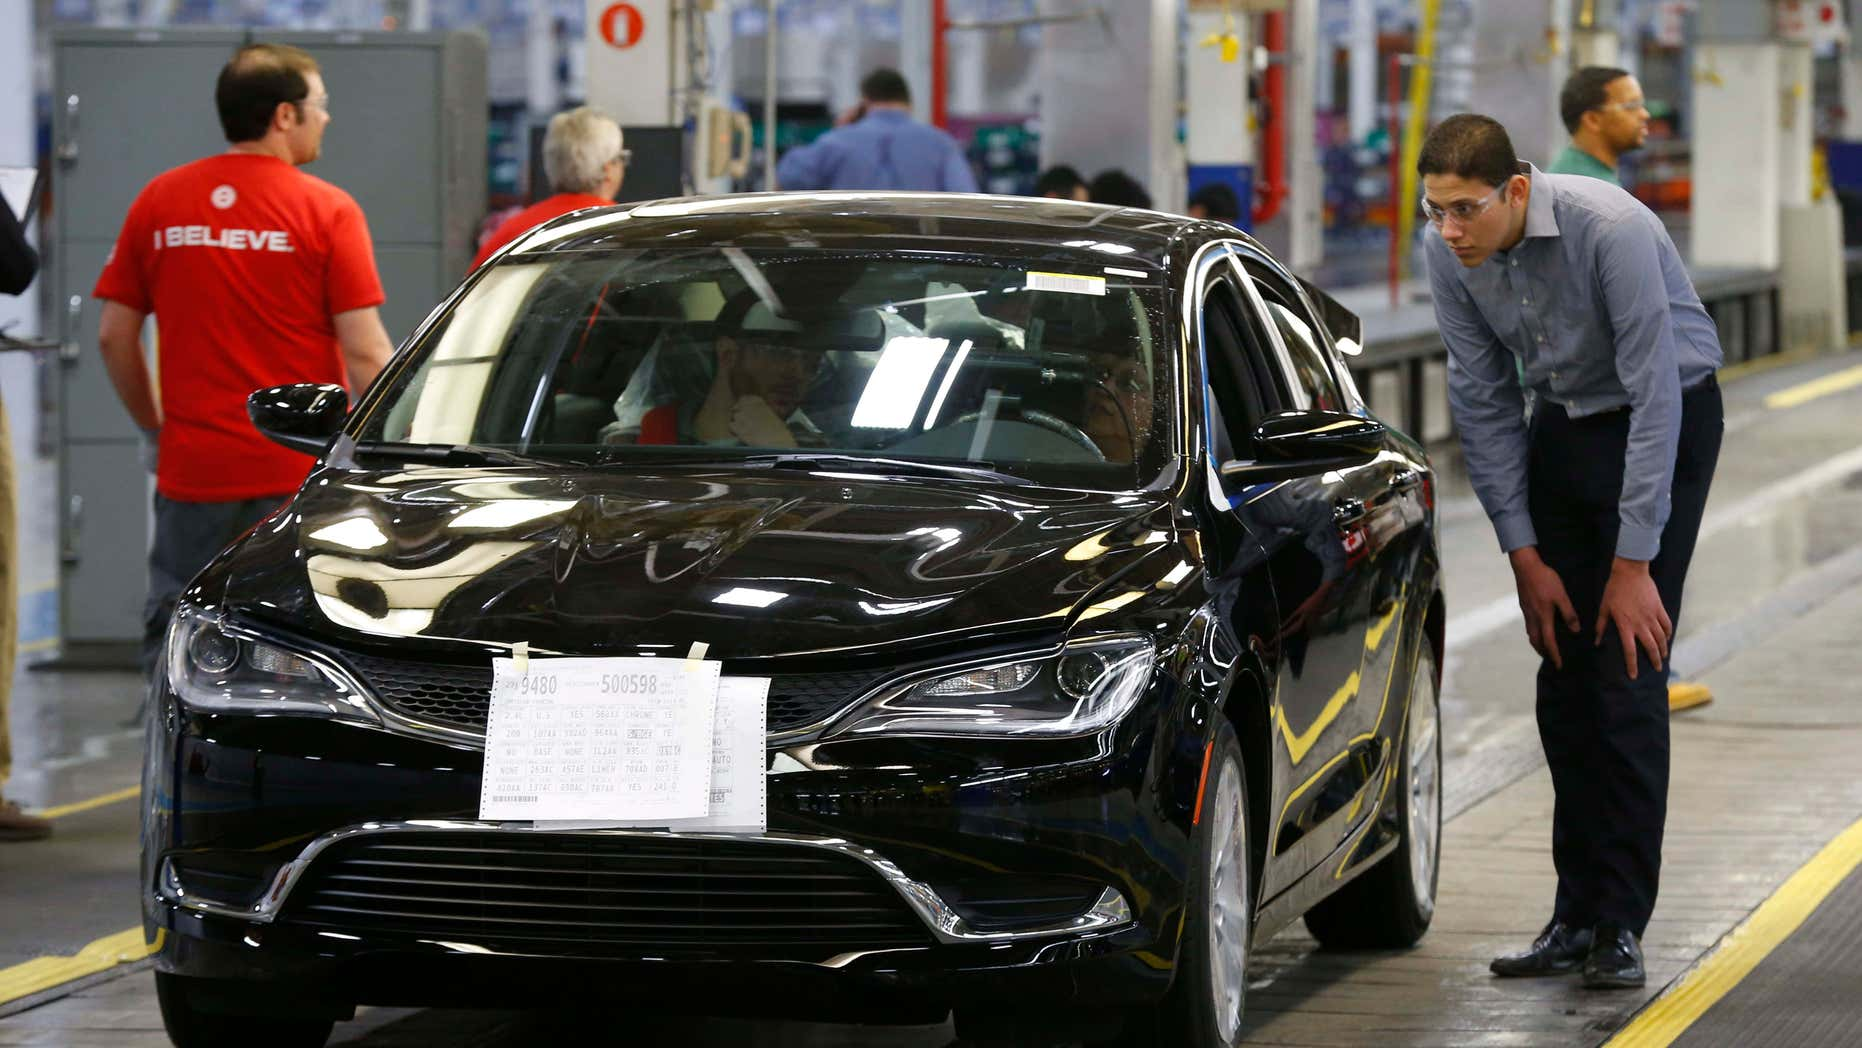 FILE - In this March 14, 2014 file photo, a 2015 Chrysler 200 automobile rolls down the assembly line at the Sterling Heights Assembly Plant in Sterling Heights, Mich.